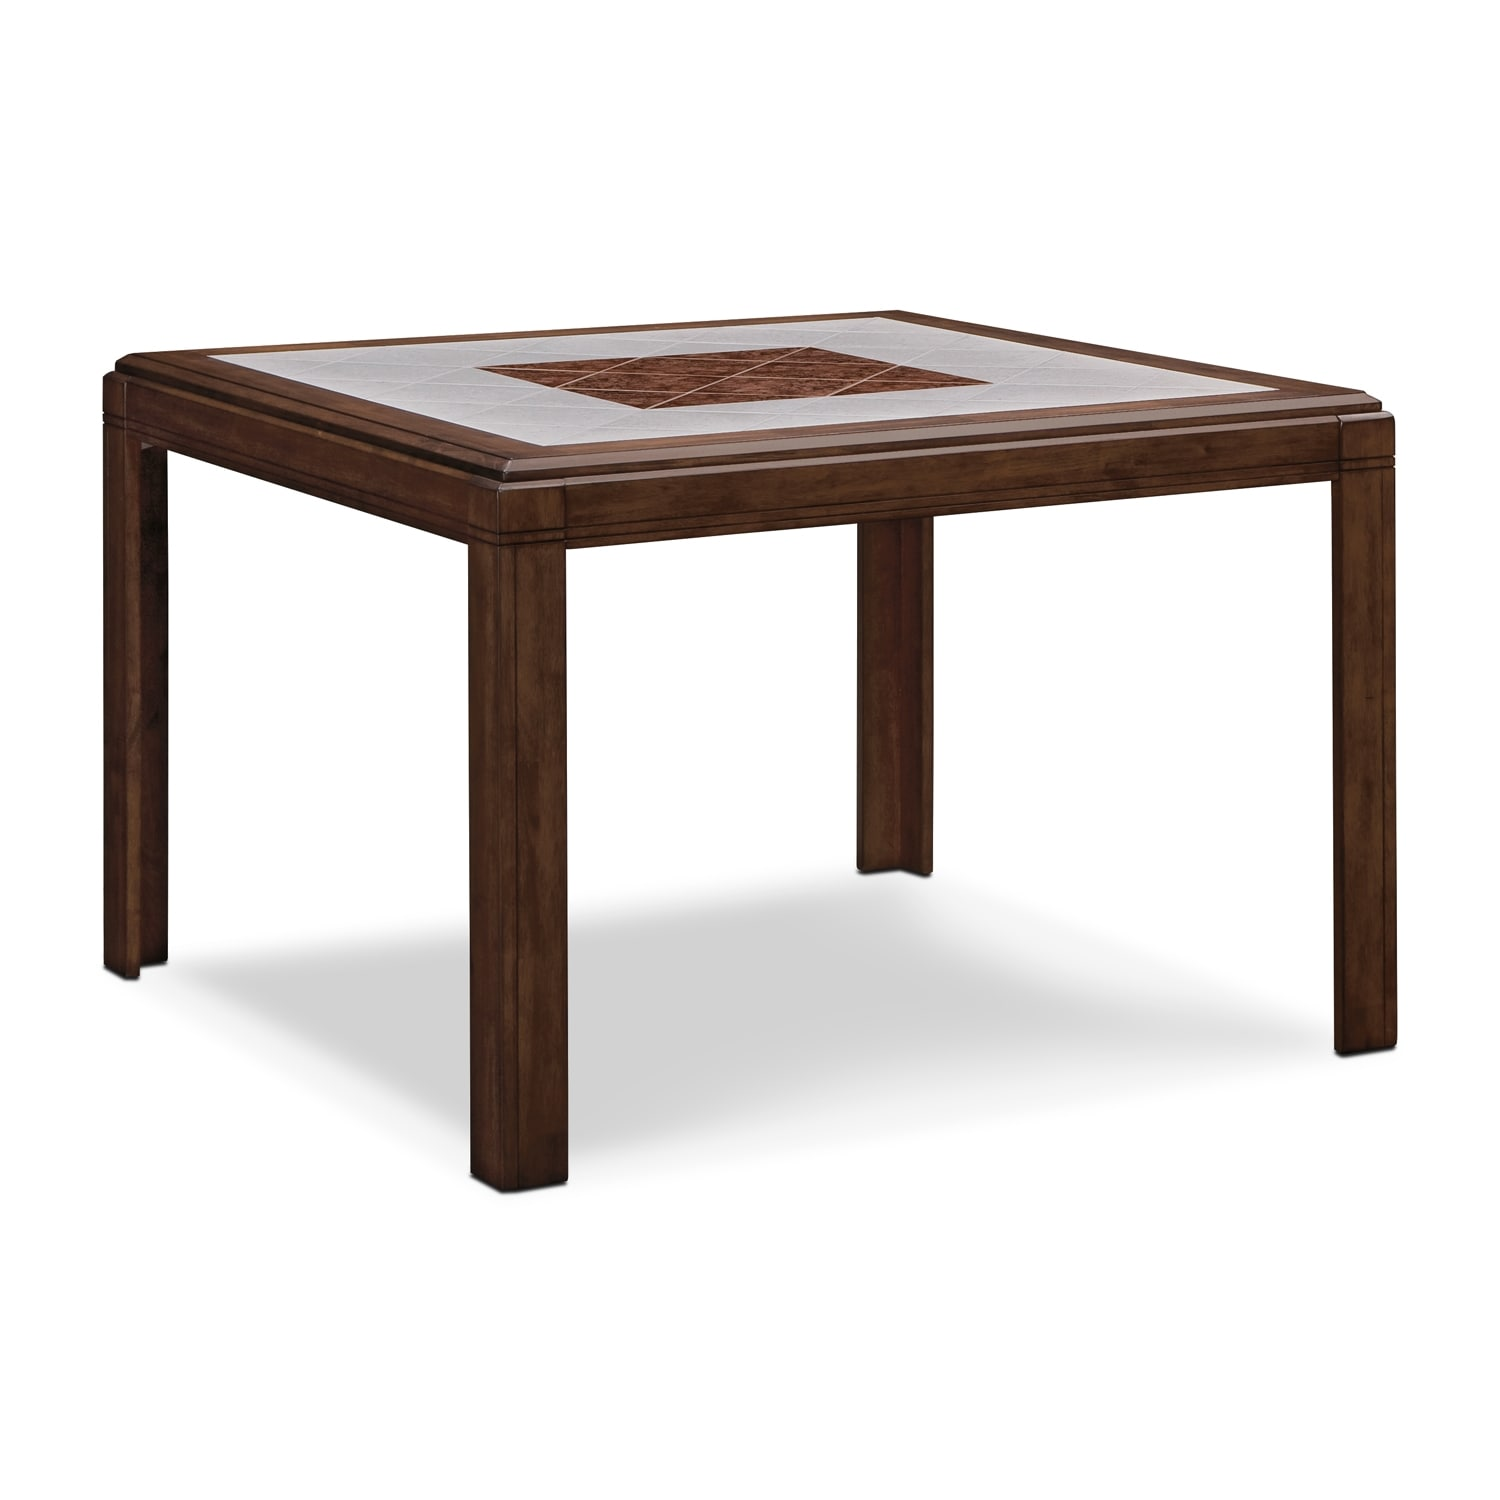 signature furniture deer creek ii dining room counter height table